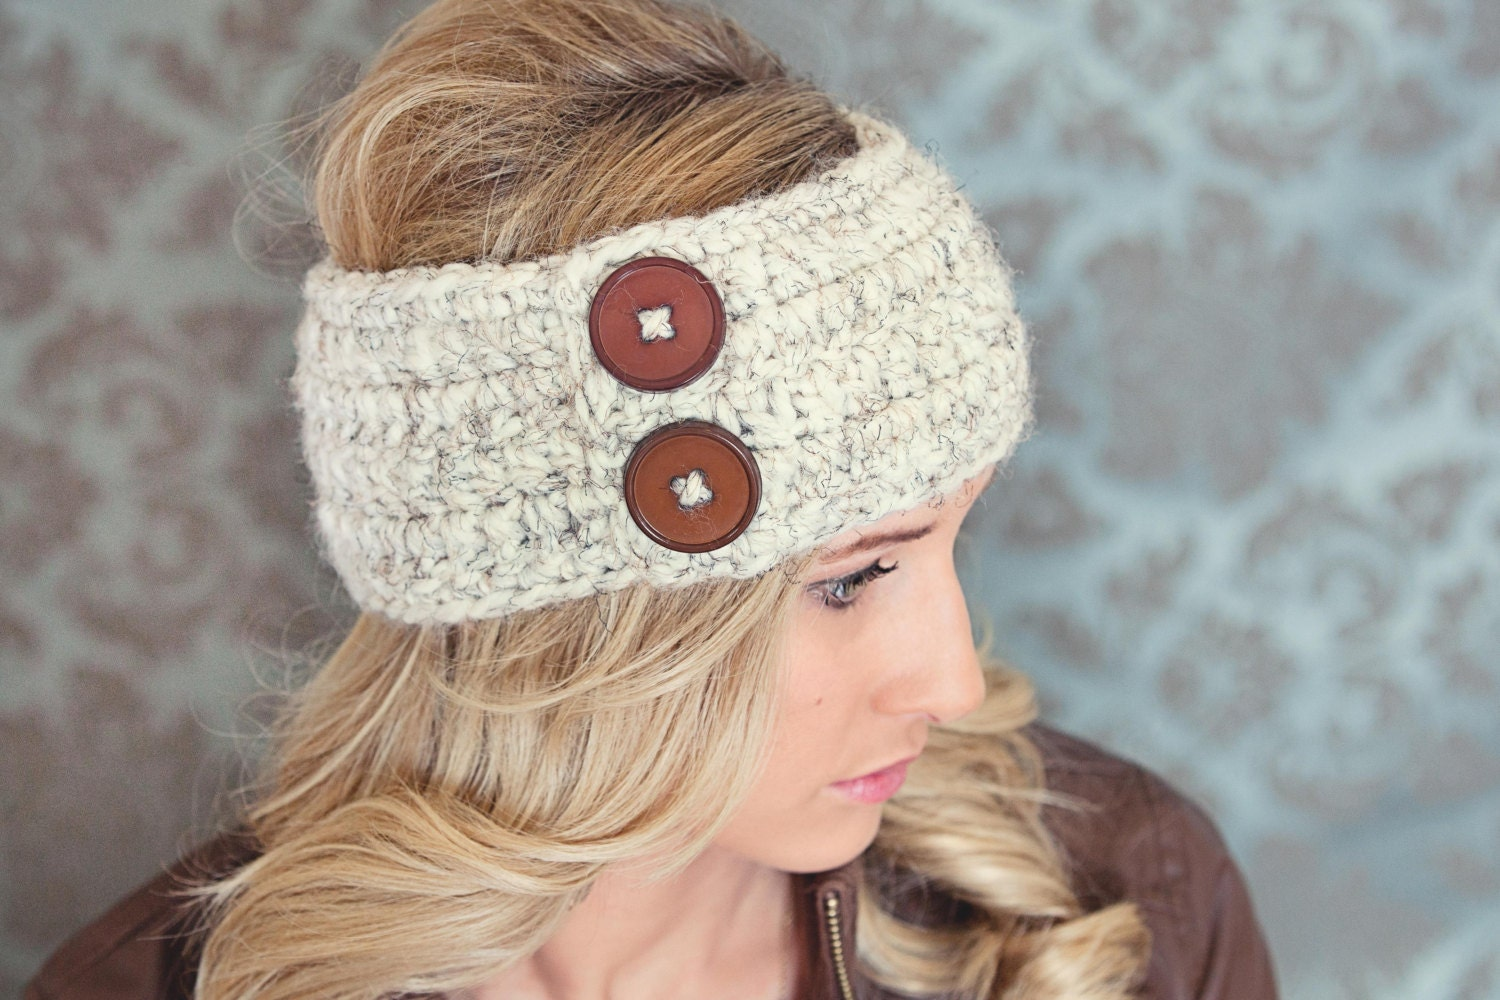 Unique Crochet Headband Ear Warmer Pattern With Button Closure Photo ...